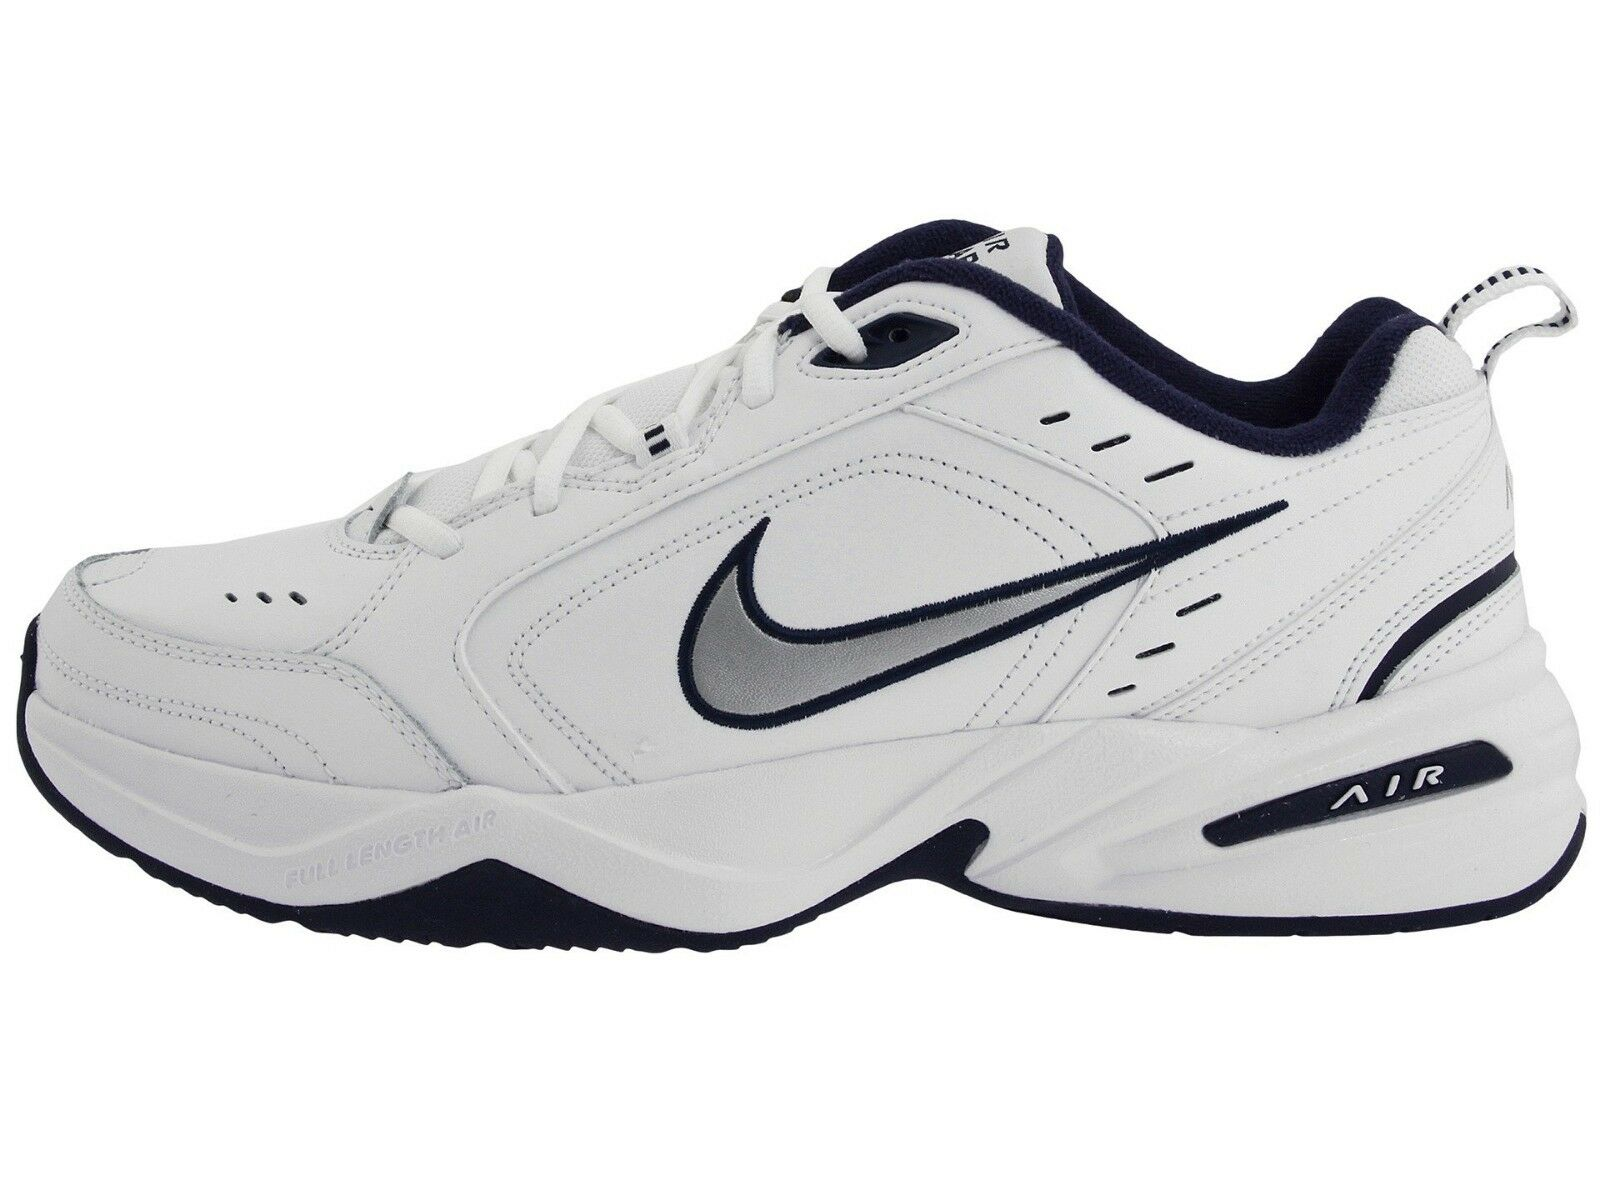 Nike Mens Air Monarch IV Training shoes 4E (416355 102) White Navy Sizes 8.5-13